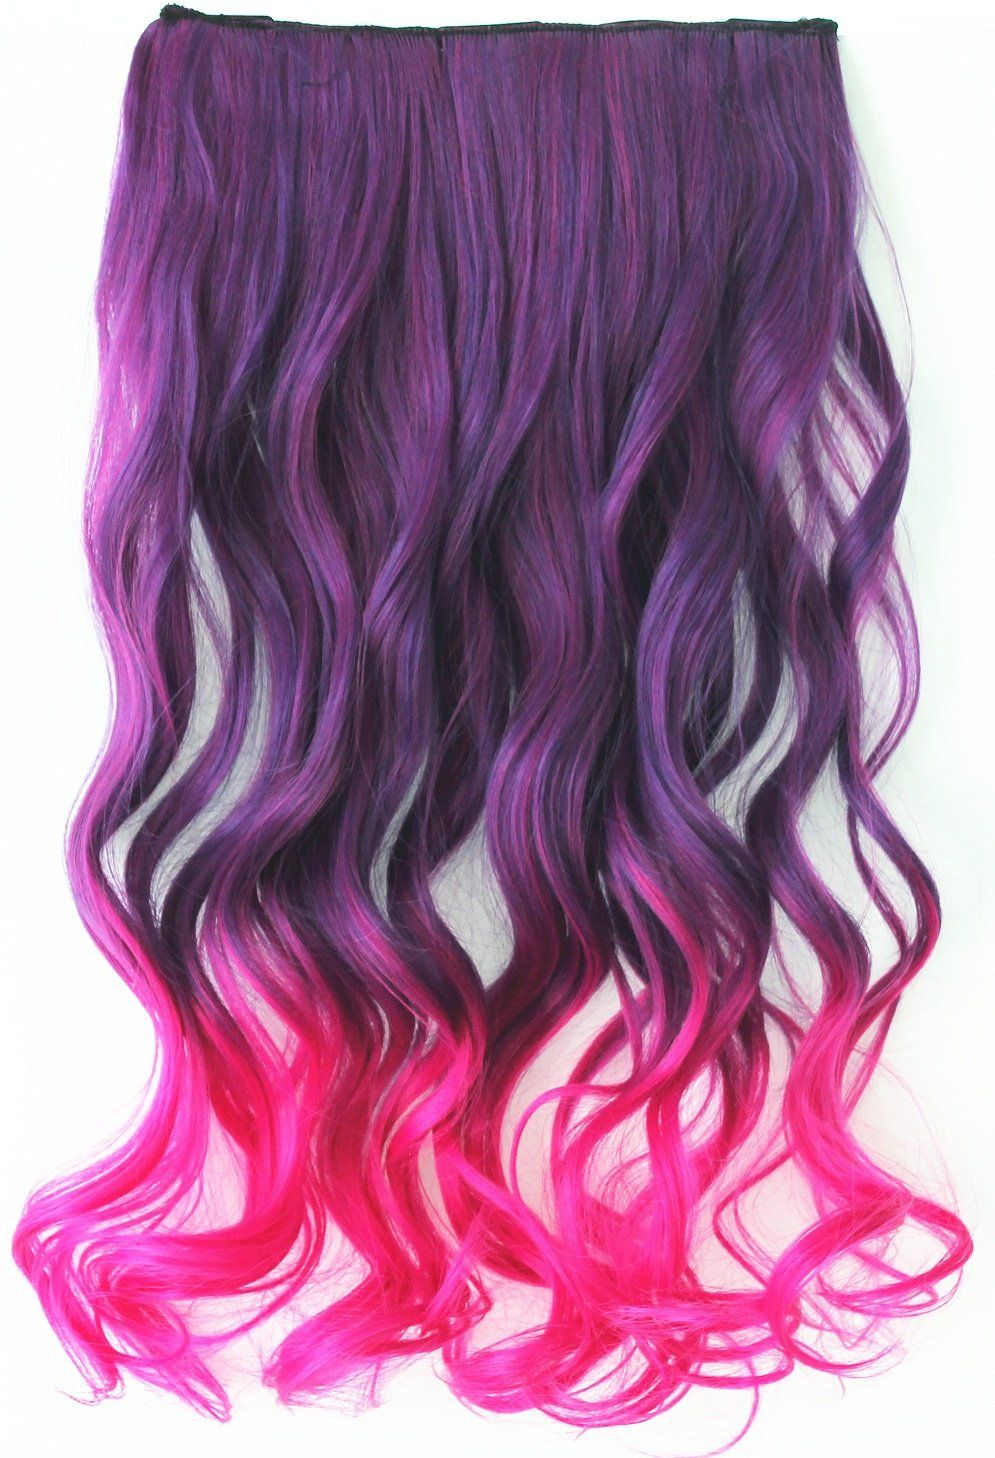 22 Ladies Women Fashion One Piece Clip In Hair Extension Long Curly